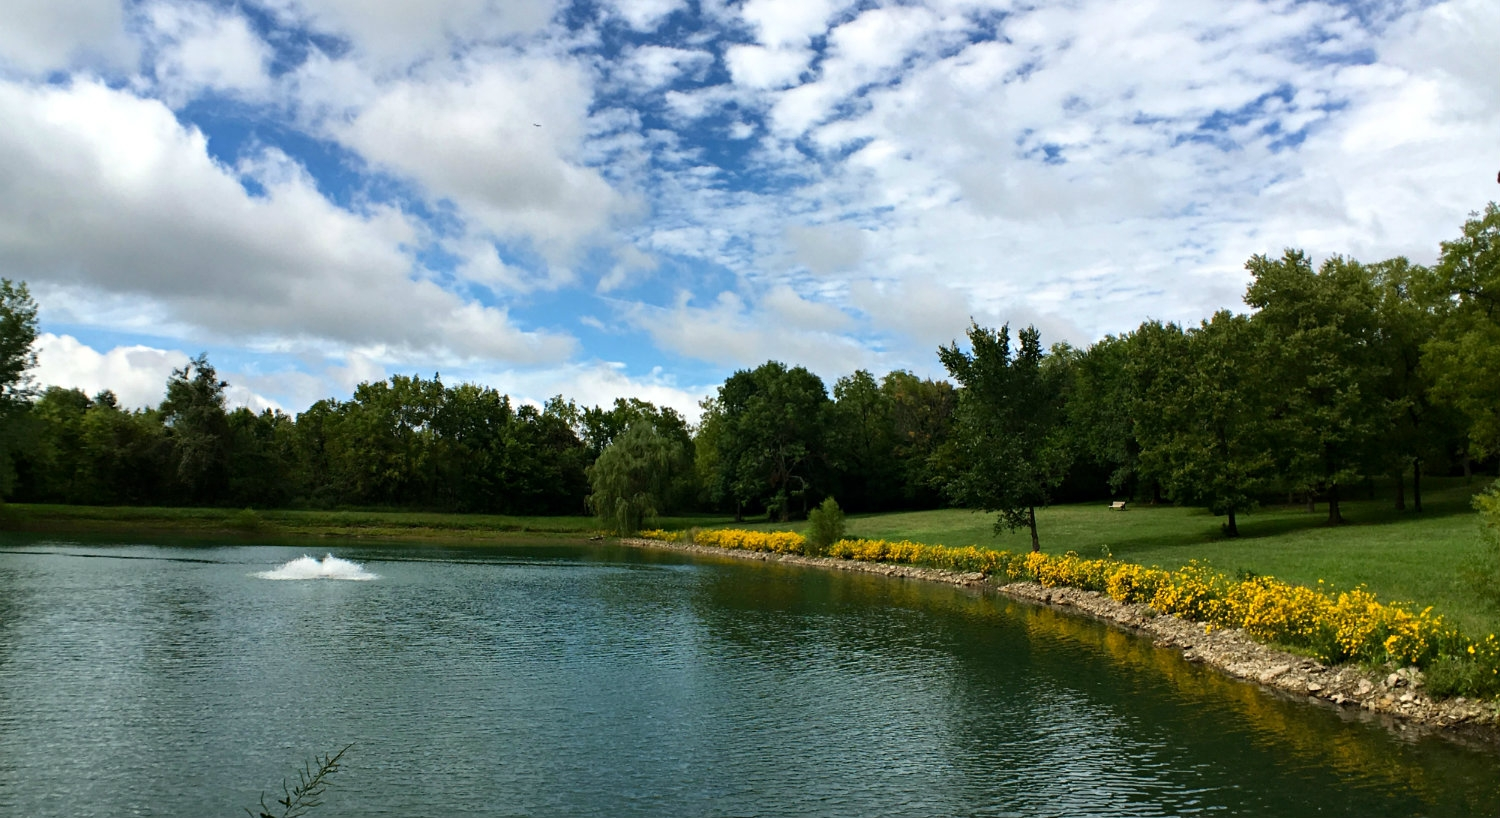 Large pond surrounded by yellow flowering shrubs, grassy lawn, trees and blue skies with puffy clouds